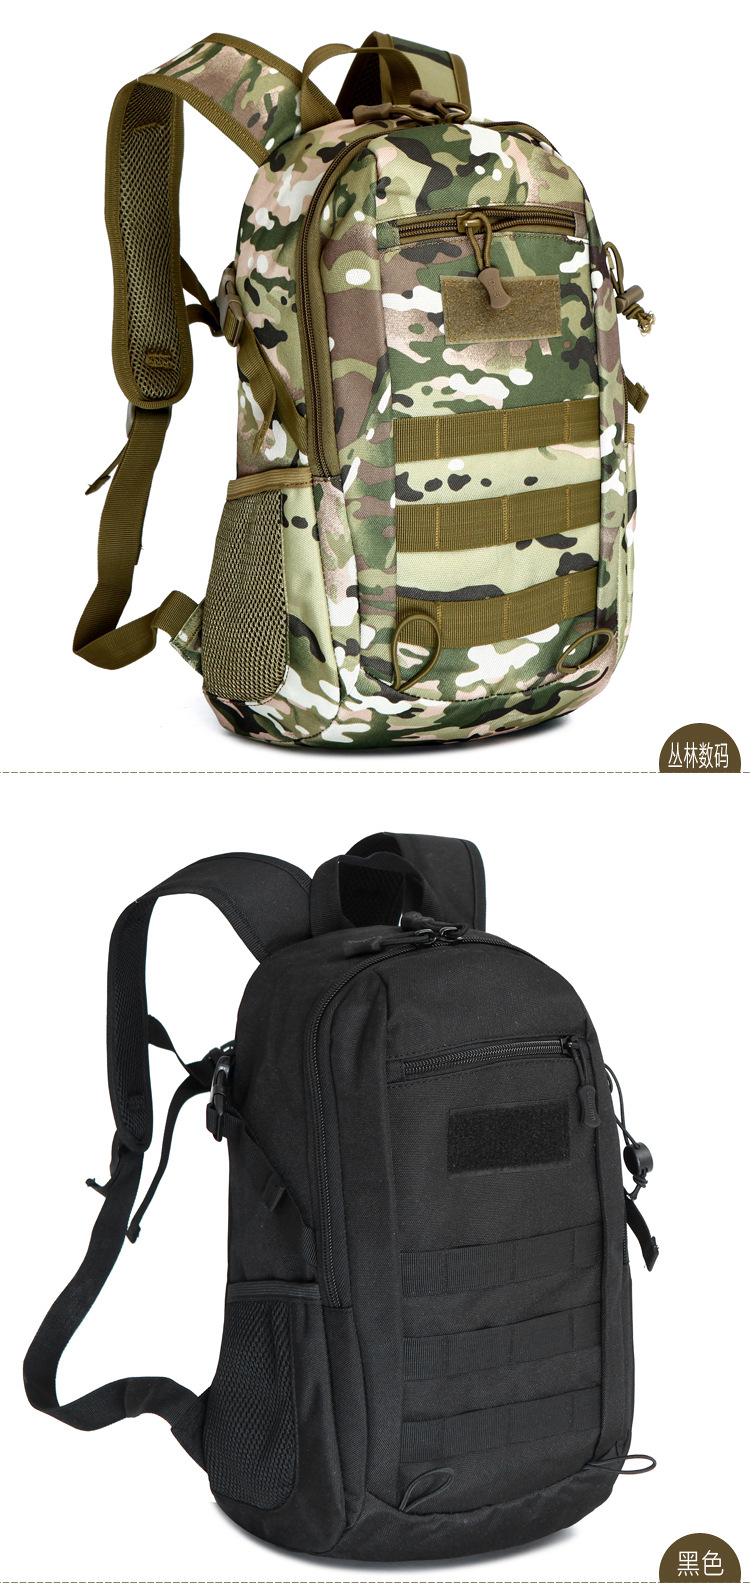 309e29f903f 2017 Fashion men s backpacks Small camouflage backpack cool high quality  school bags for teenagers boys Travel Men Shoulder Bag. -1 05 -1 06